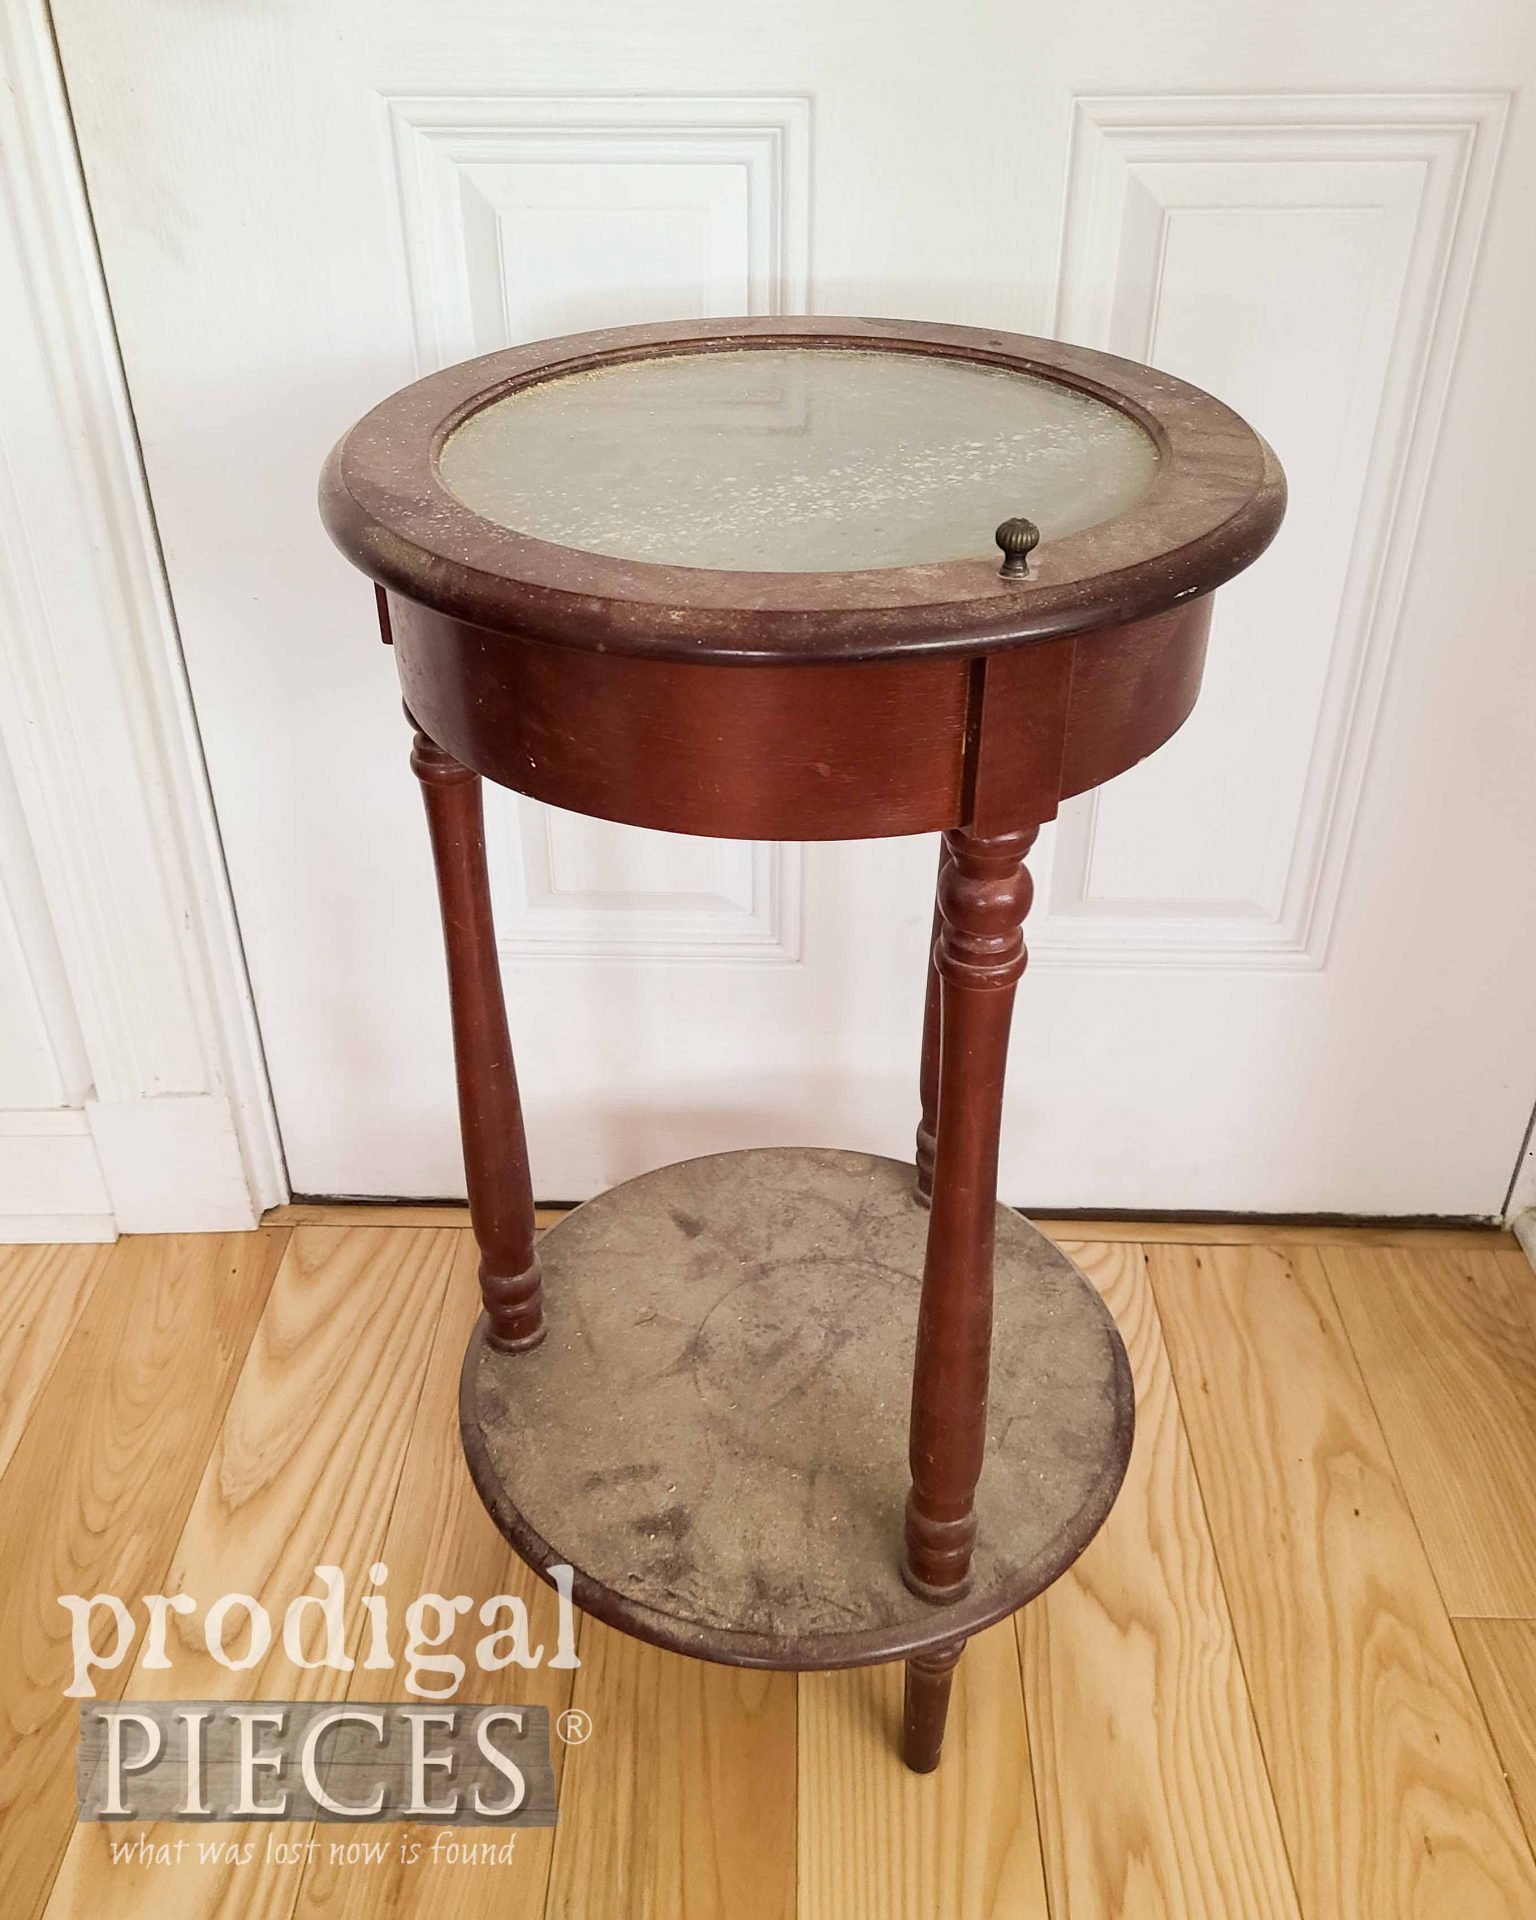 Tiered Side Table Before by Prodigal Pieces | prodigalpieces.com #prodigalpieces